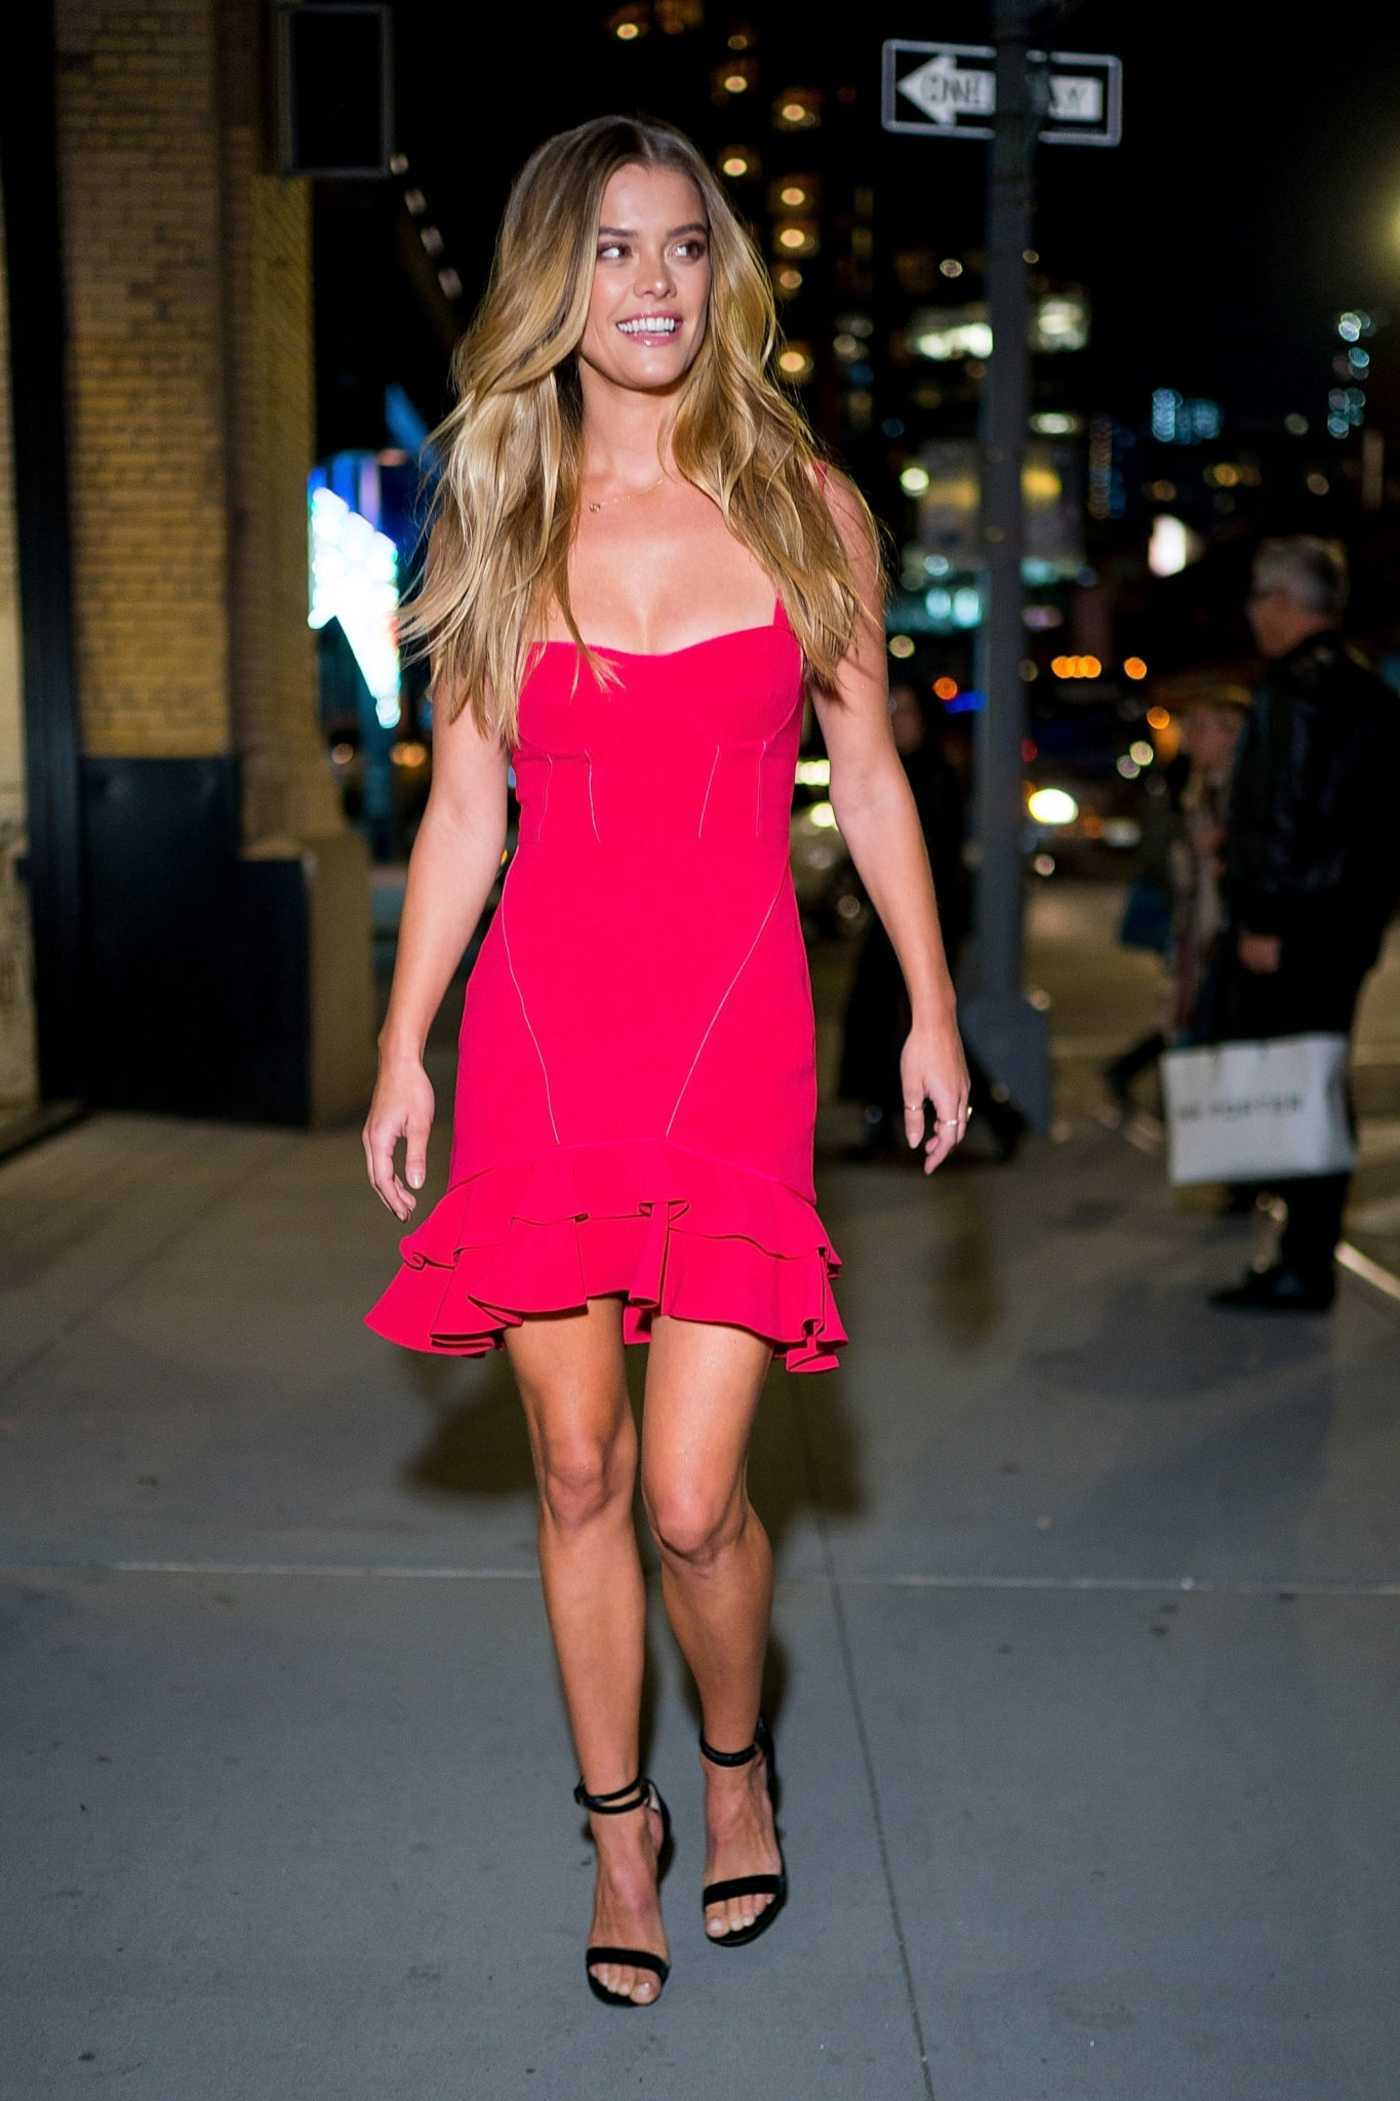 Nina Agdal in a Red Dress Arrives at Intermix 25th Anniversary Party in New York City 10/18/2018